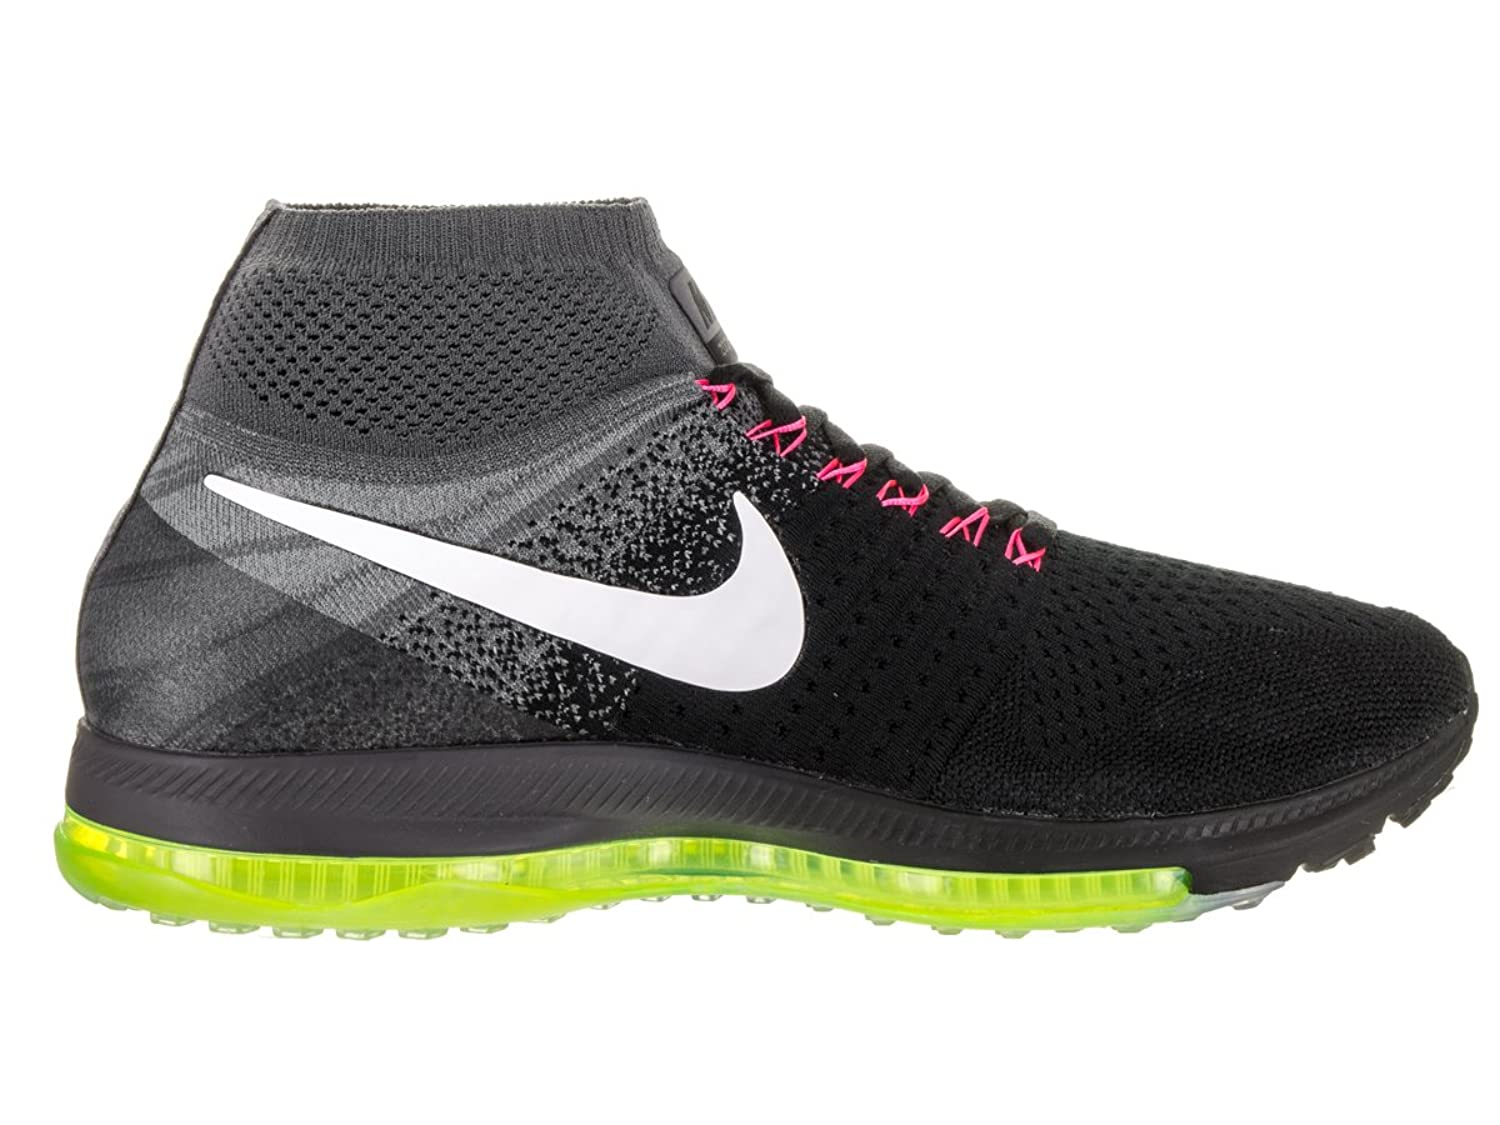 Nike Men's Zoom All Out Flyknit Running Shoes: Amazon.co.uk: Shoes & Bags